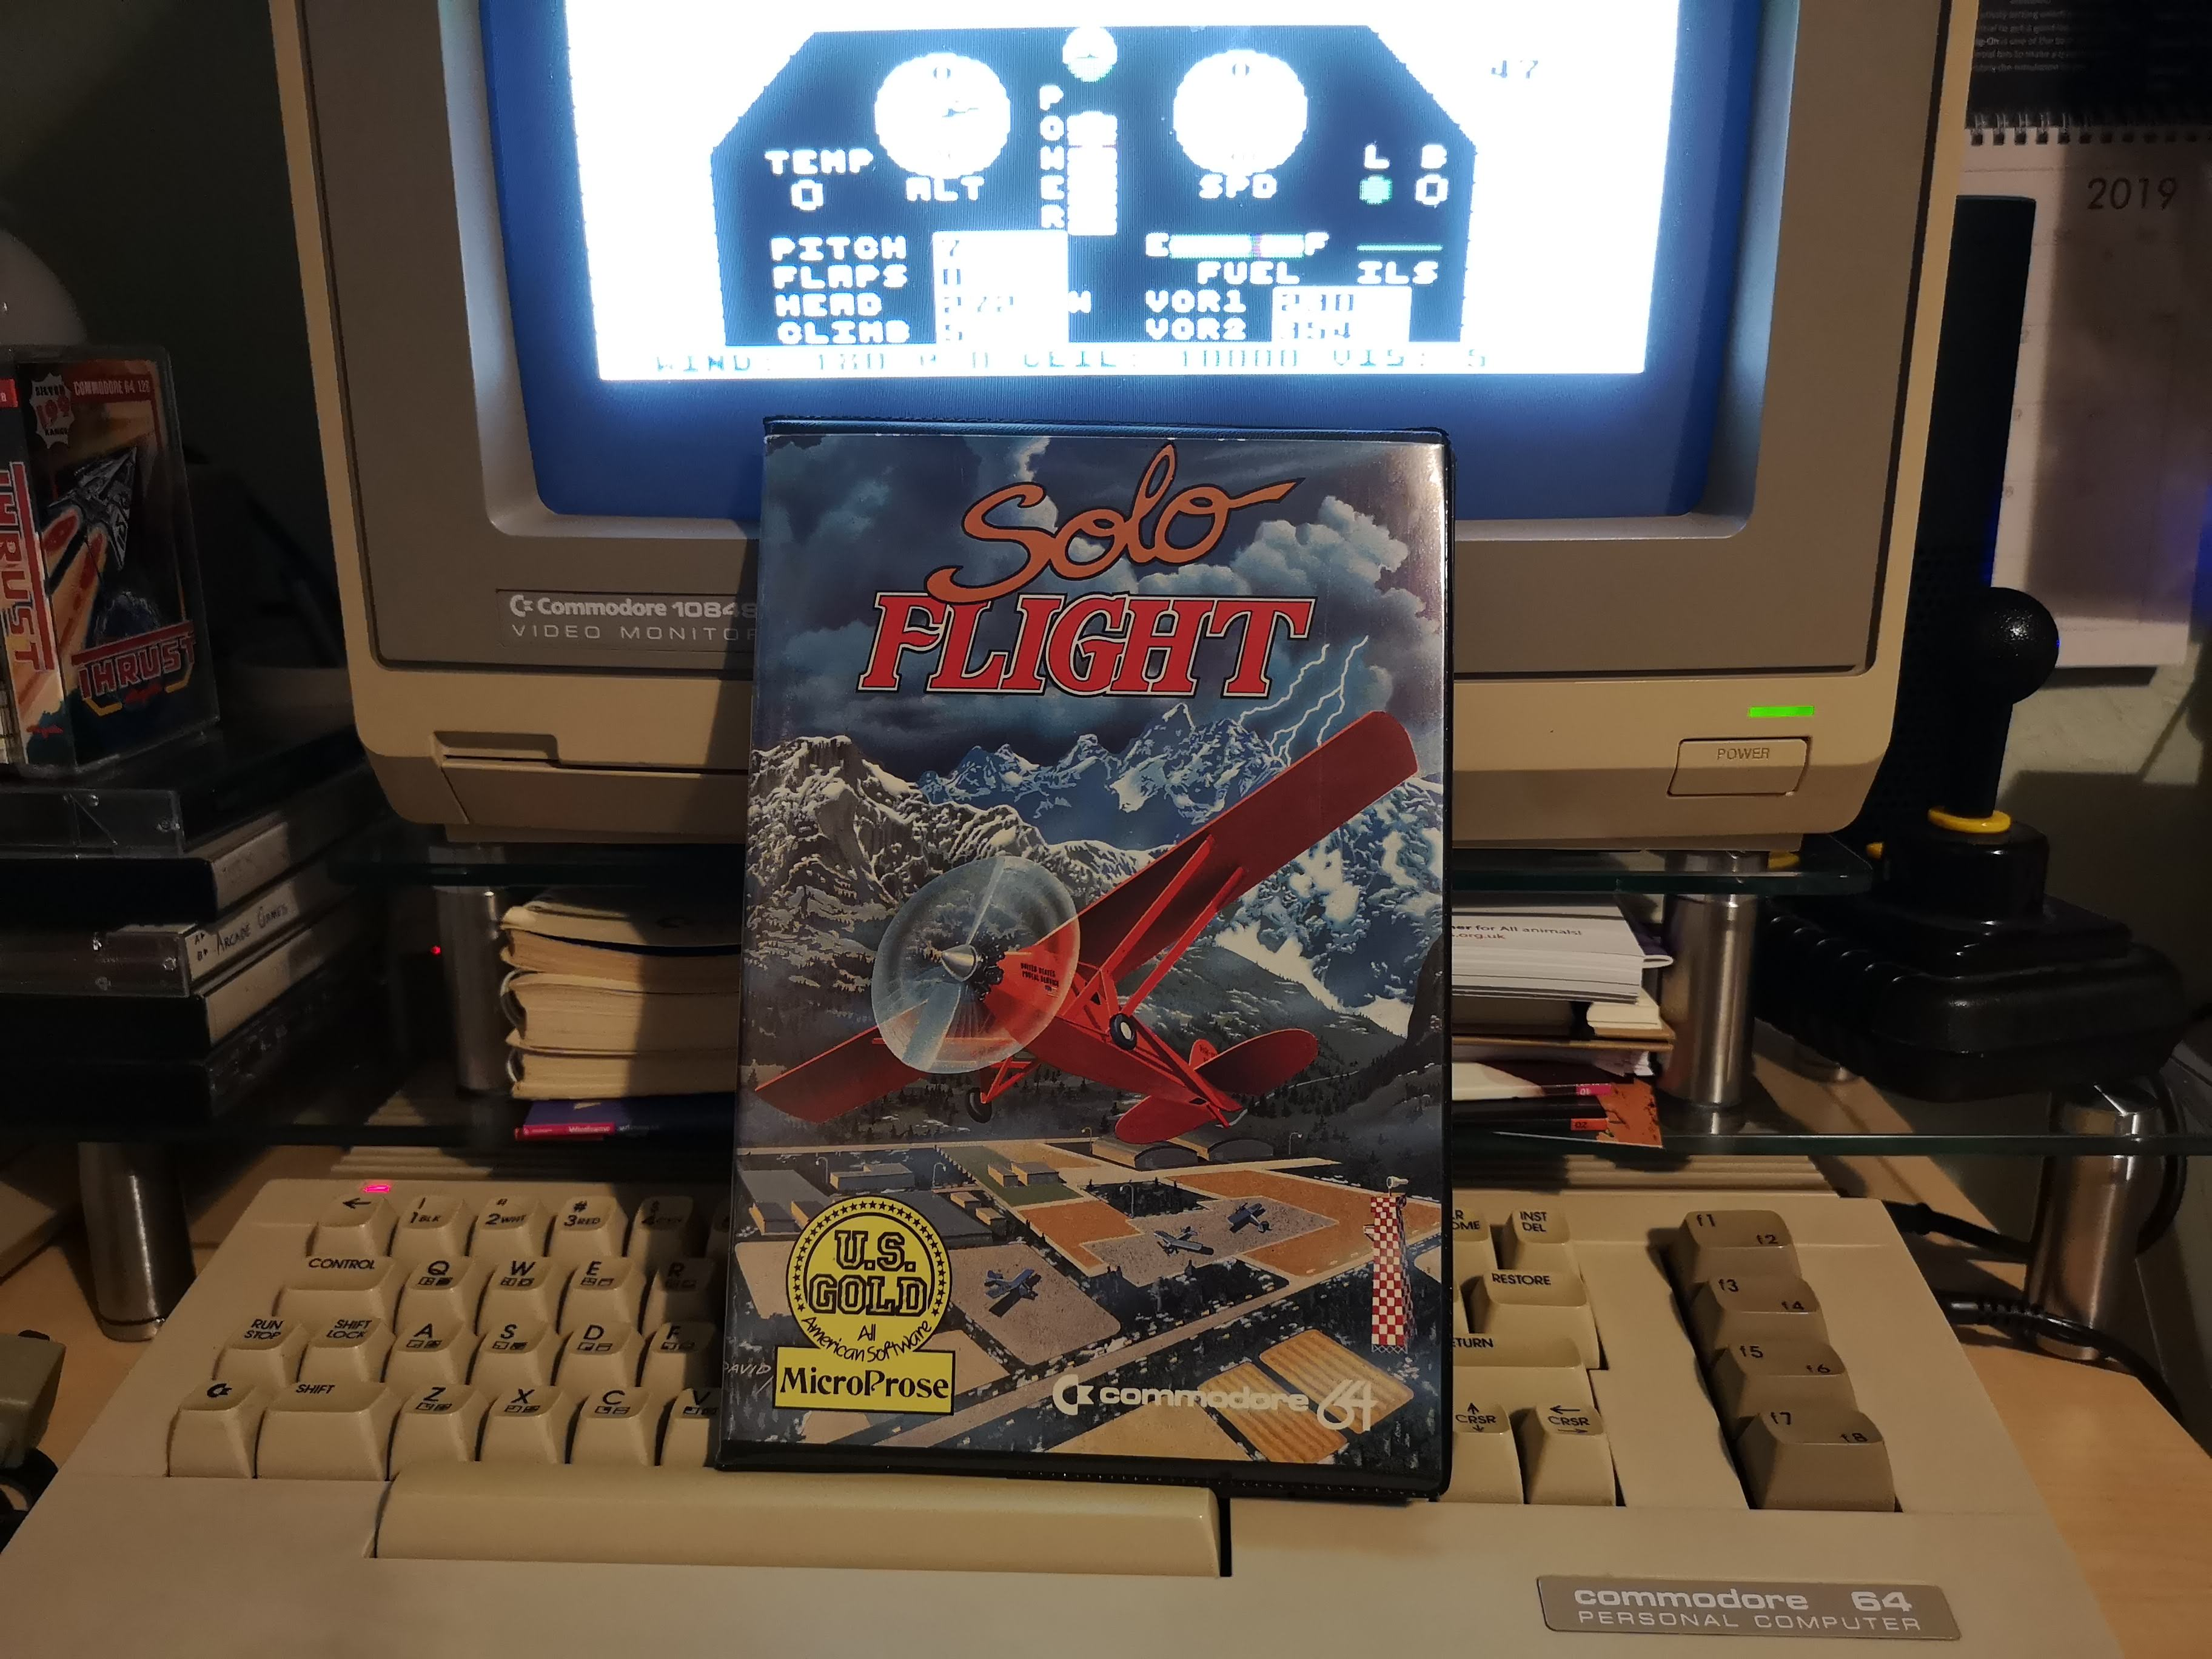 Raspberry Pi Commodore 64 Games